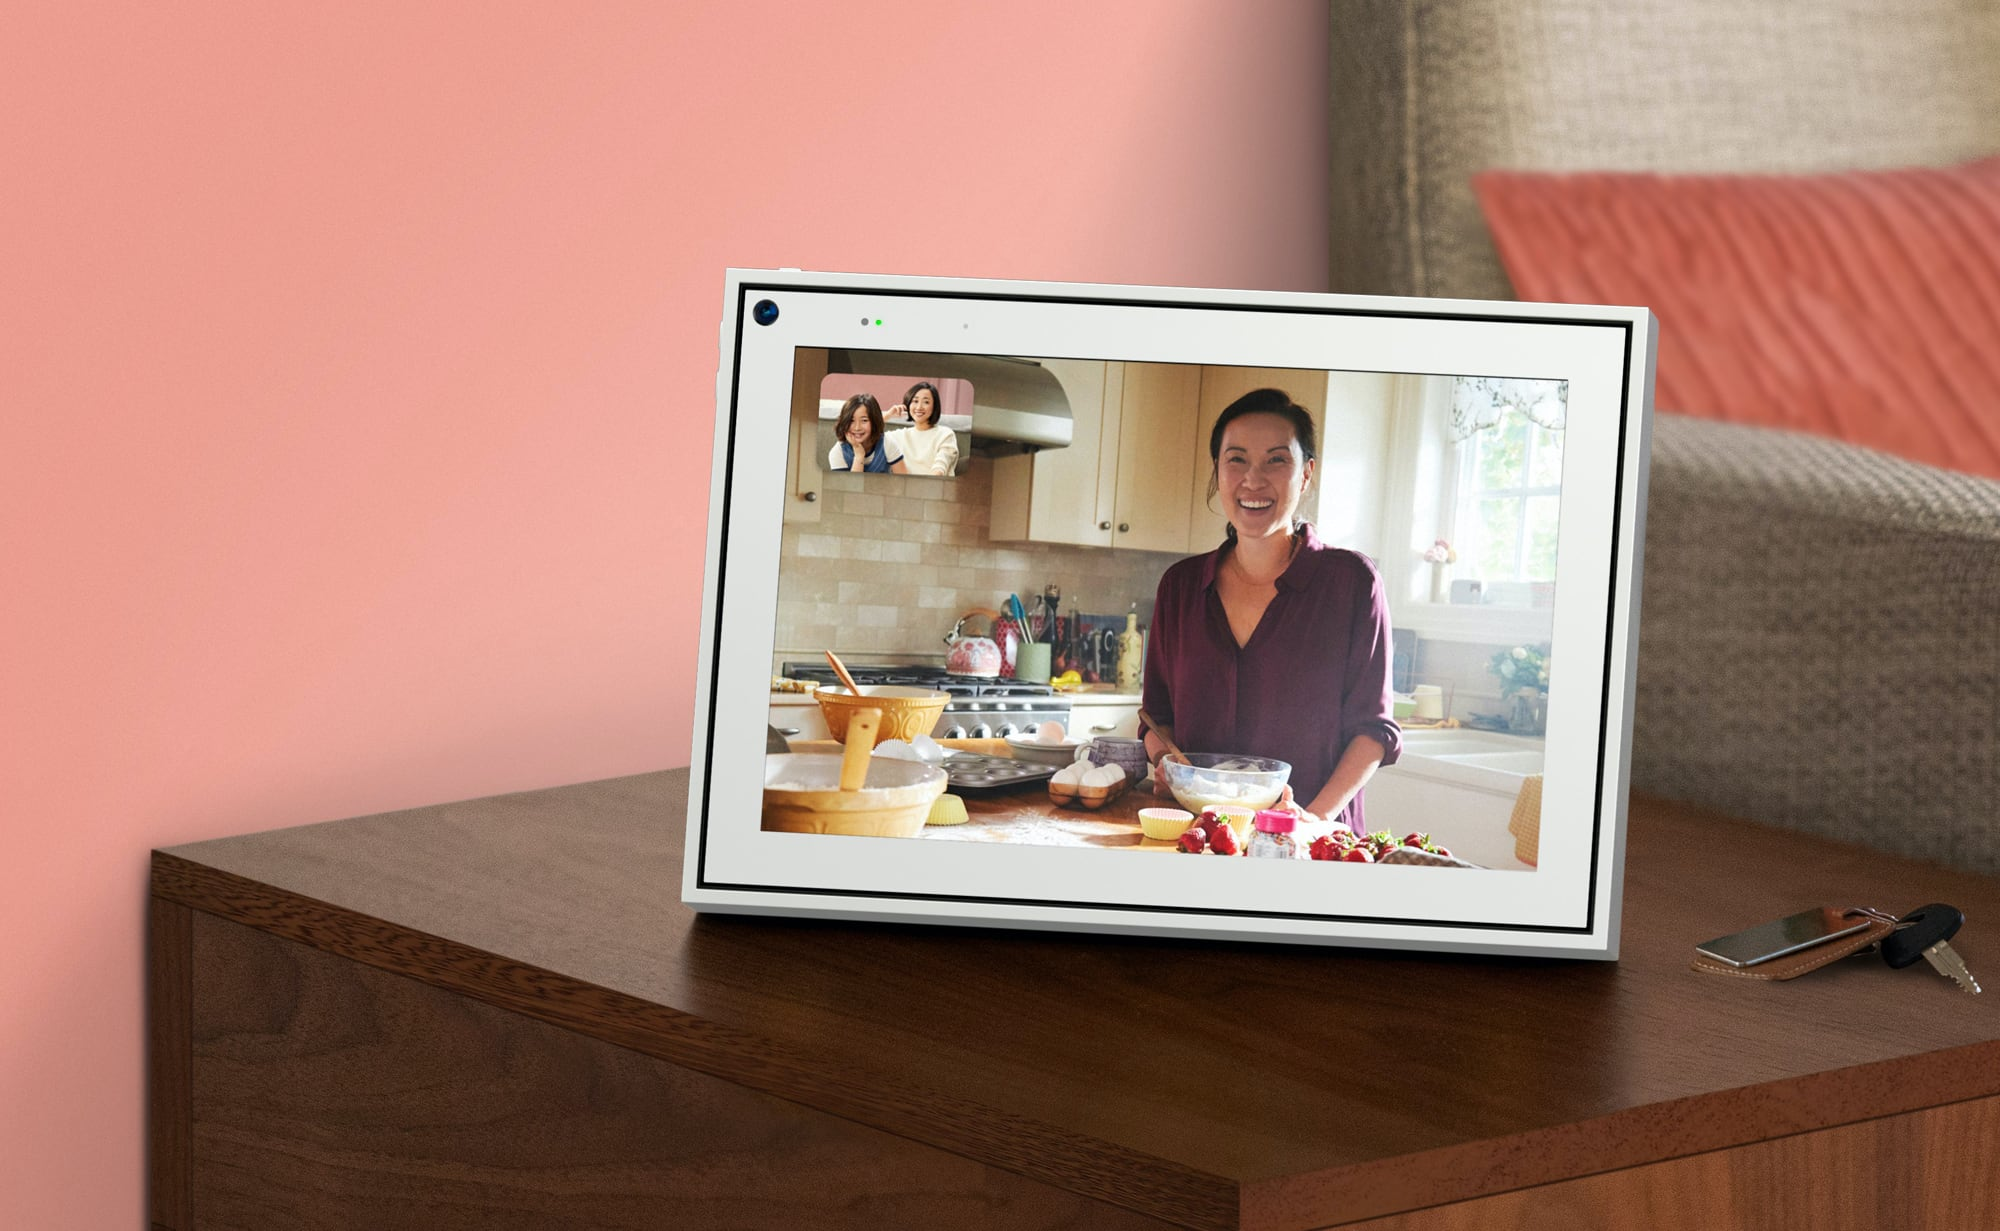 Facebook Portal 10″ Video Calling Device uses a smart camera to keep up with movement